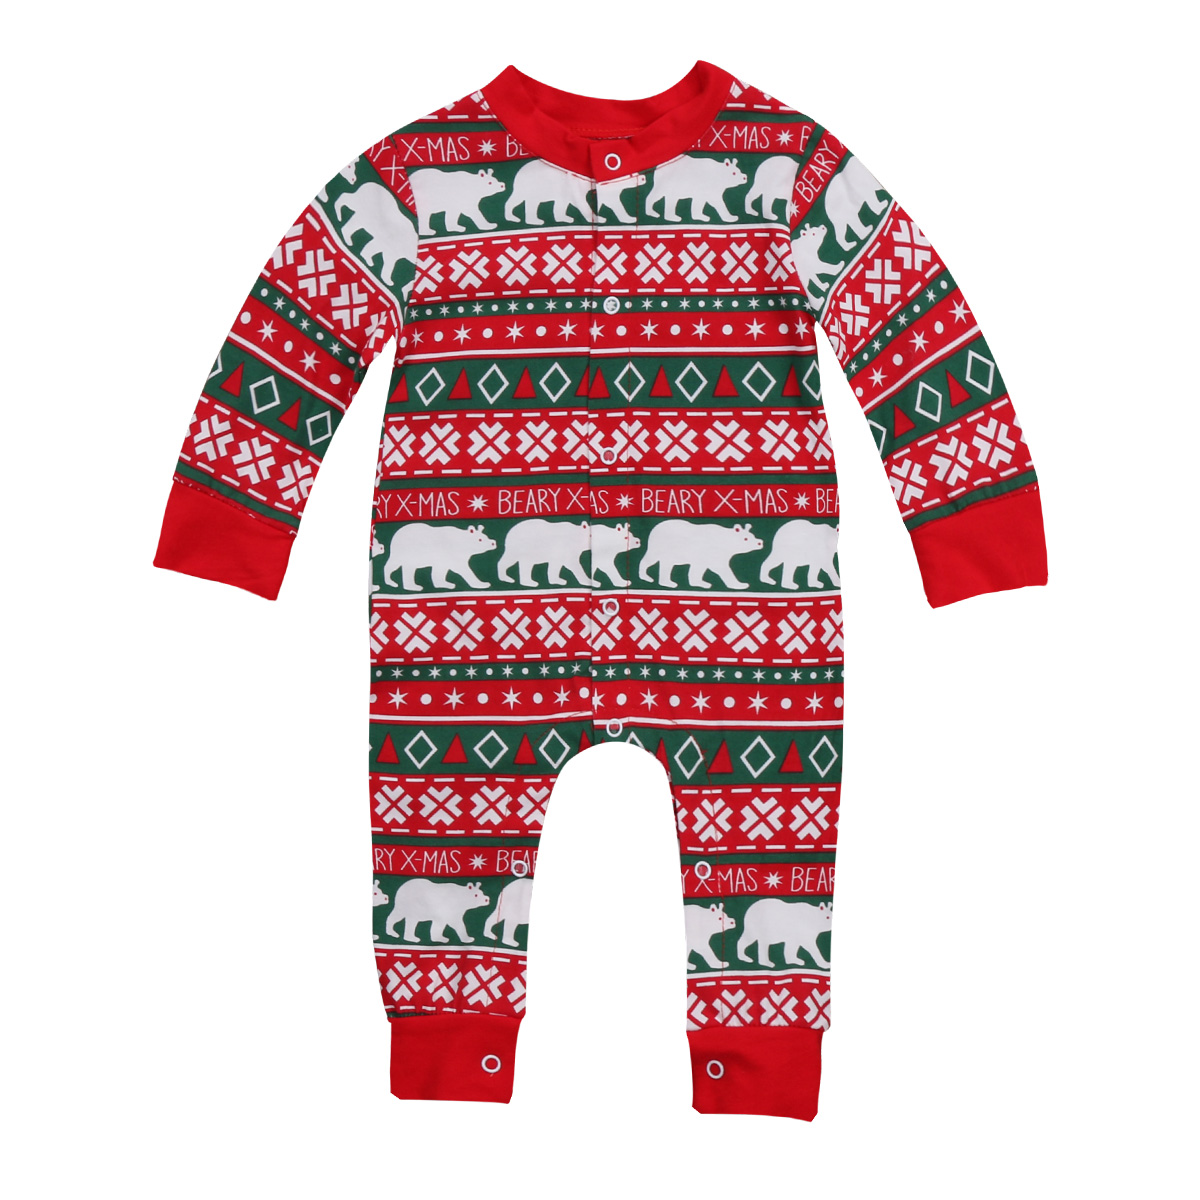 Newborn Baby Boy Girl Clothing Xmas Romper Jumpsuit Long Sleeve Cotton Cute Infant Winter Clothes Baby Girls Outfit baby boy clothes kids bodysuit infant coverall newborn romper short sleeve polo shirt cotton children costume outfit suit